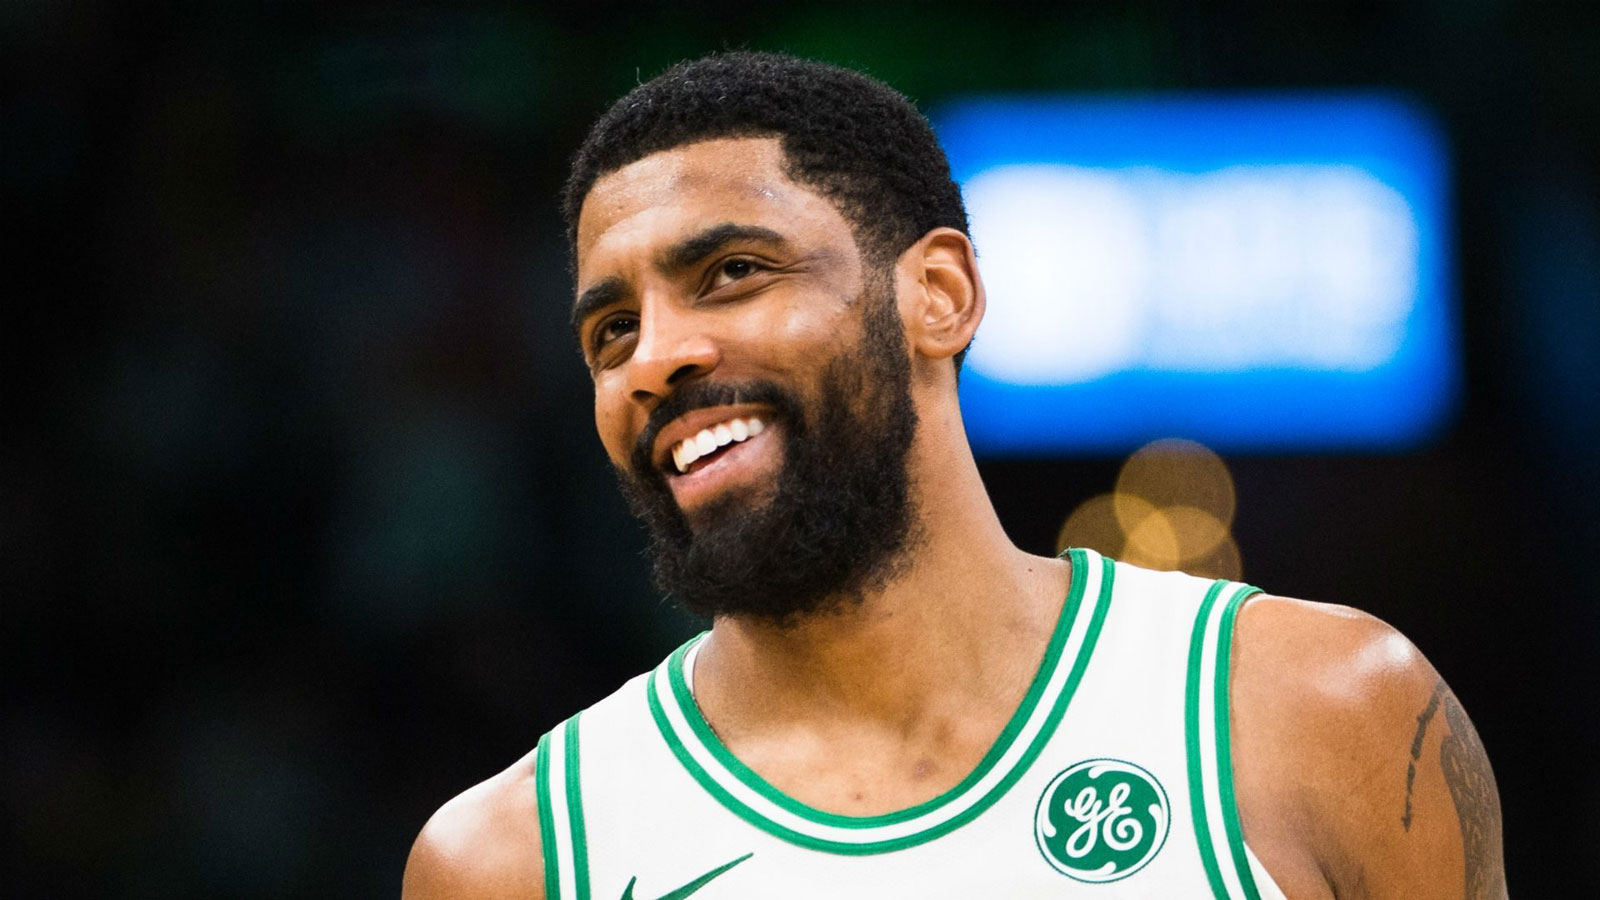 Kyrie Irving | The 8 Most Famous Vegan Athletes, Past & Present